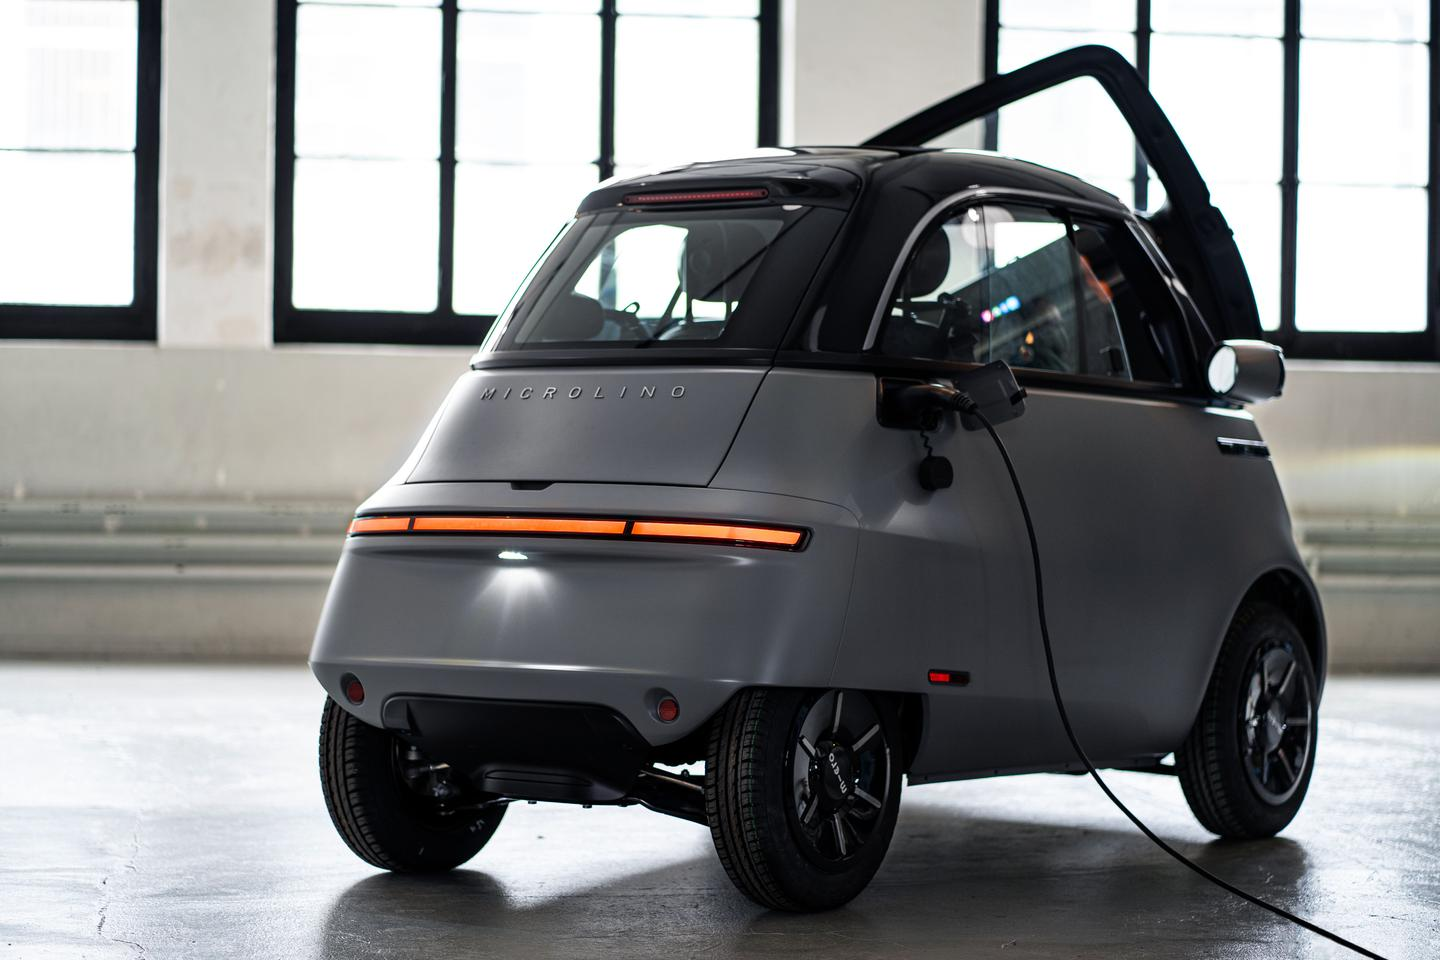 The Microlino 2.0 has a per-charge range of 125 km with a 8-kWh battery, or 200 km with a 14.4-kWh option